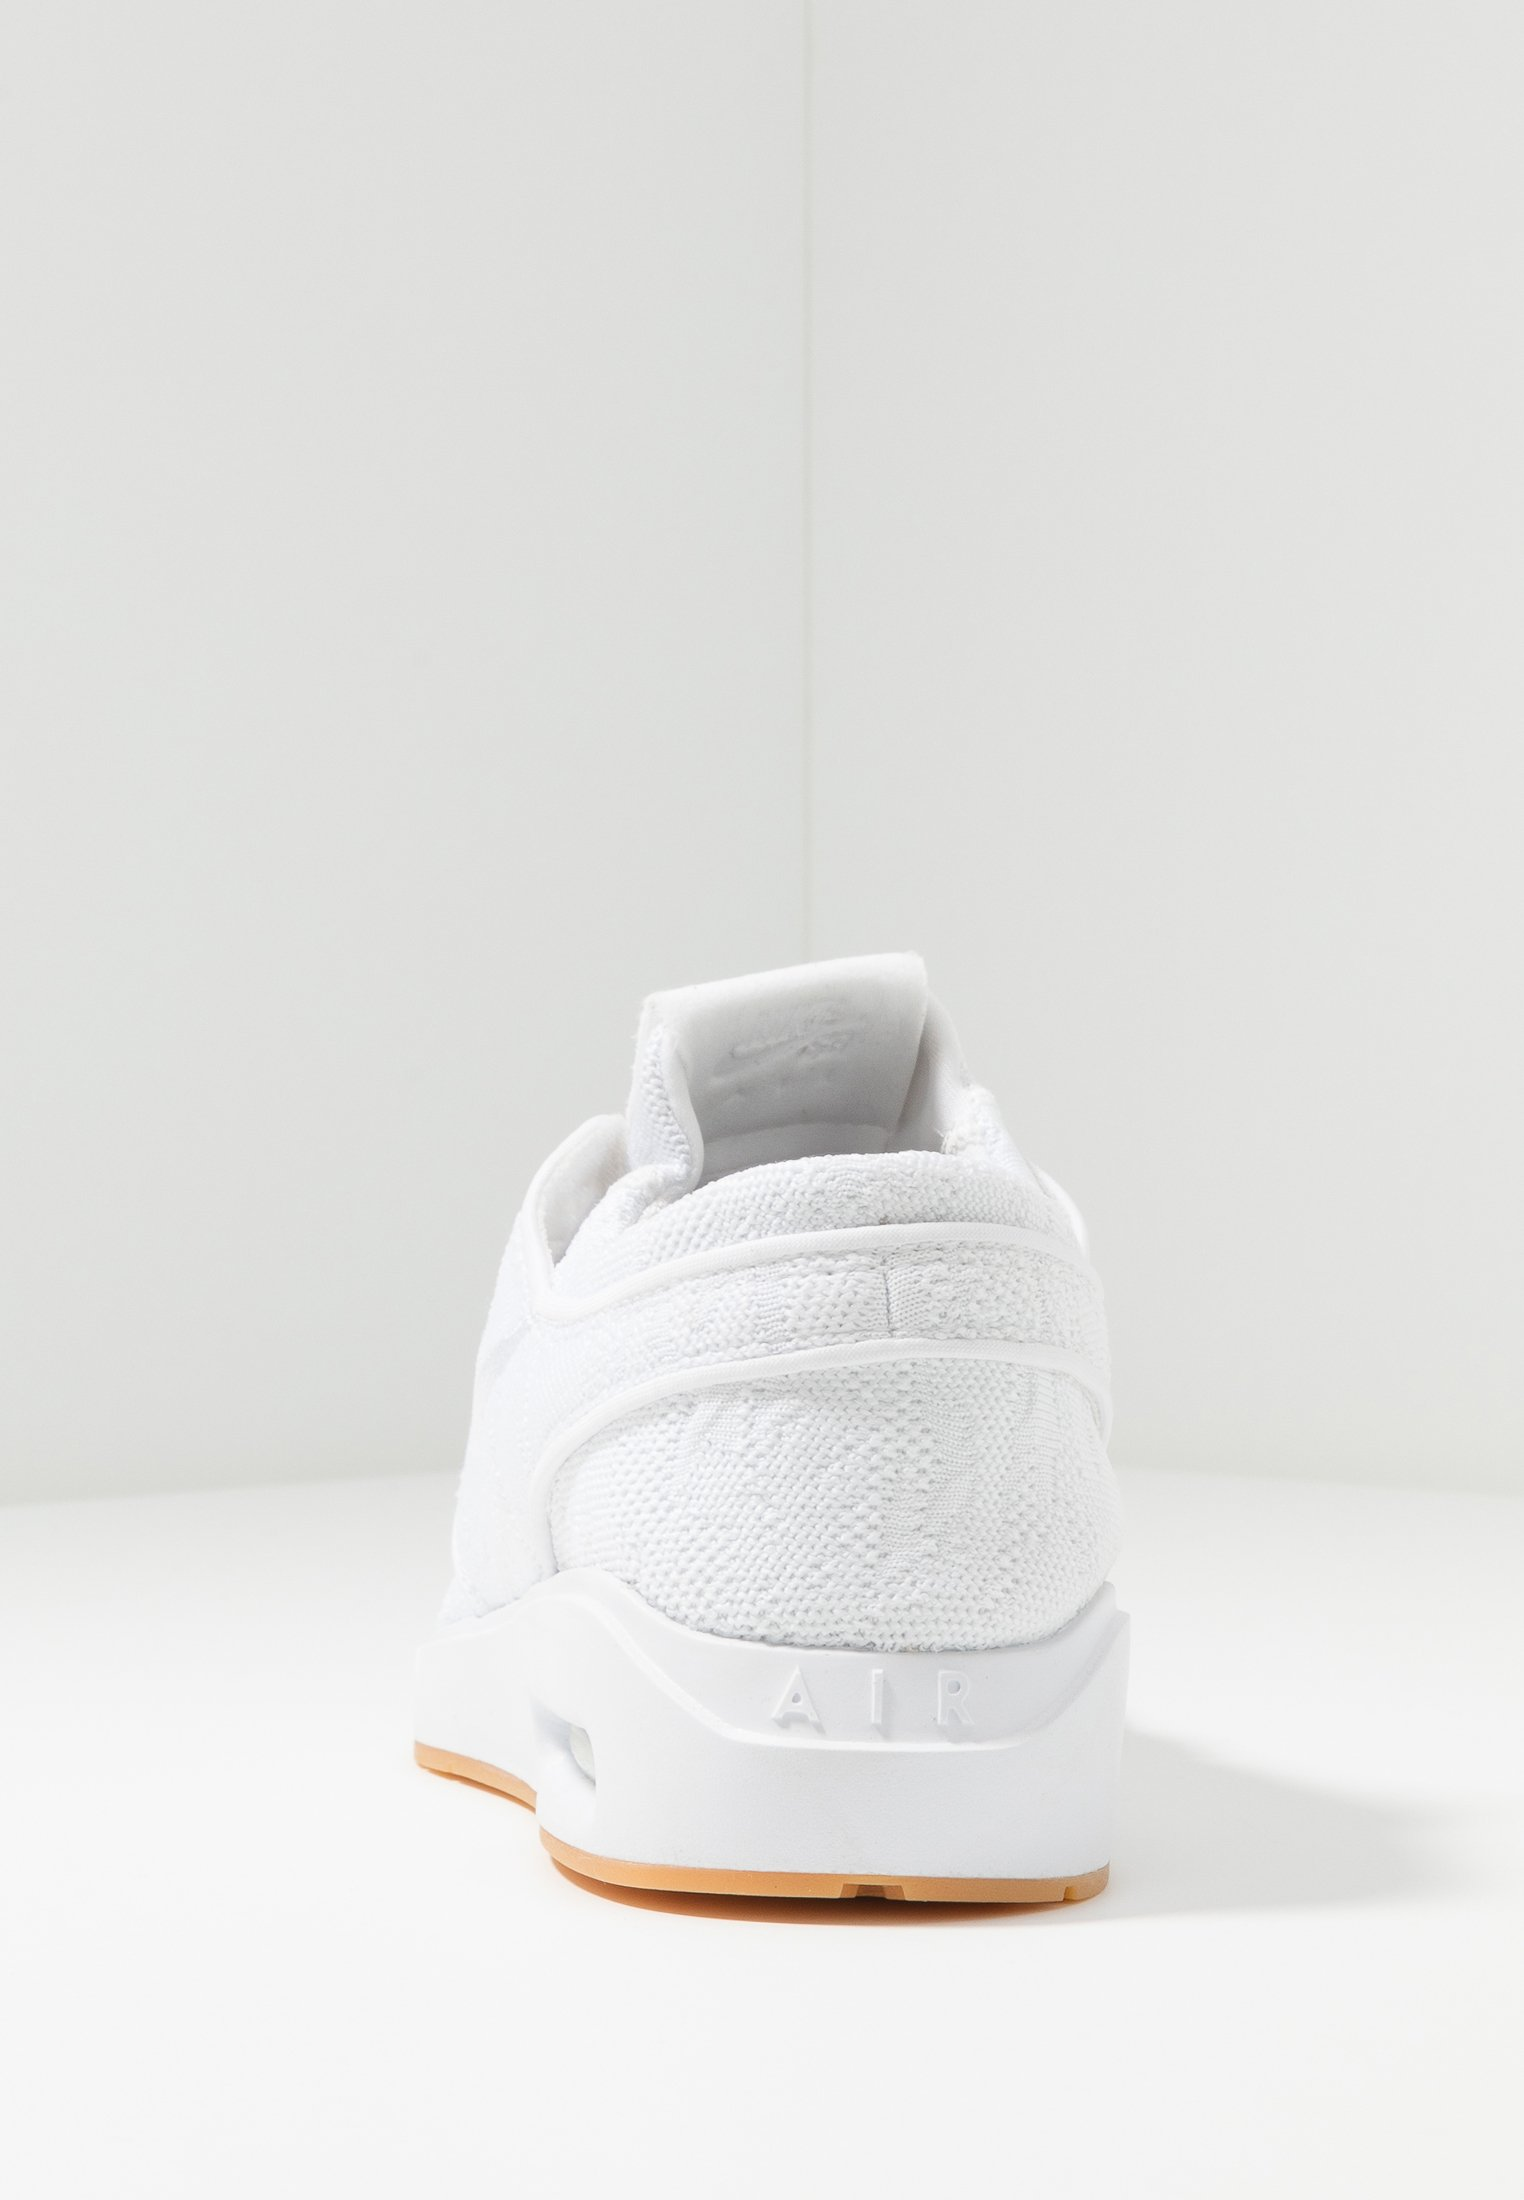 AIR MAX JANOSKI 2 Sneakers whiteyellow